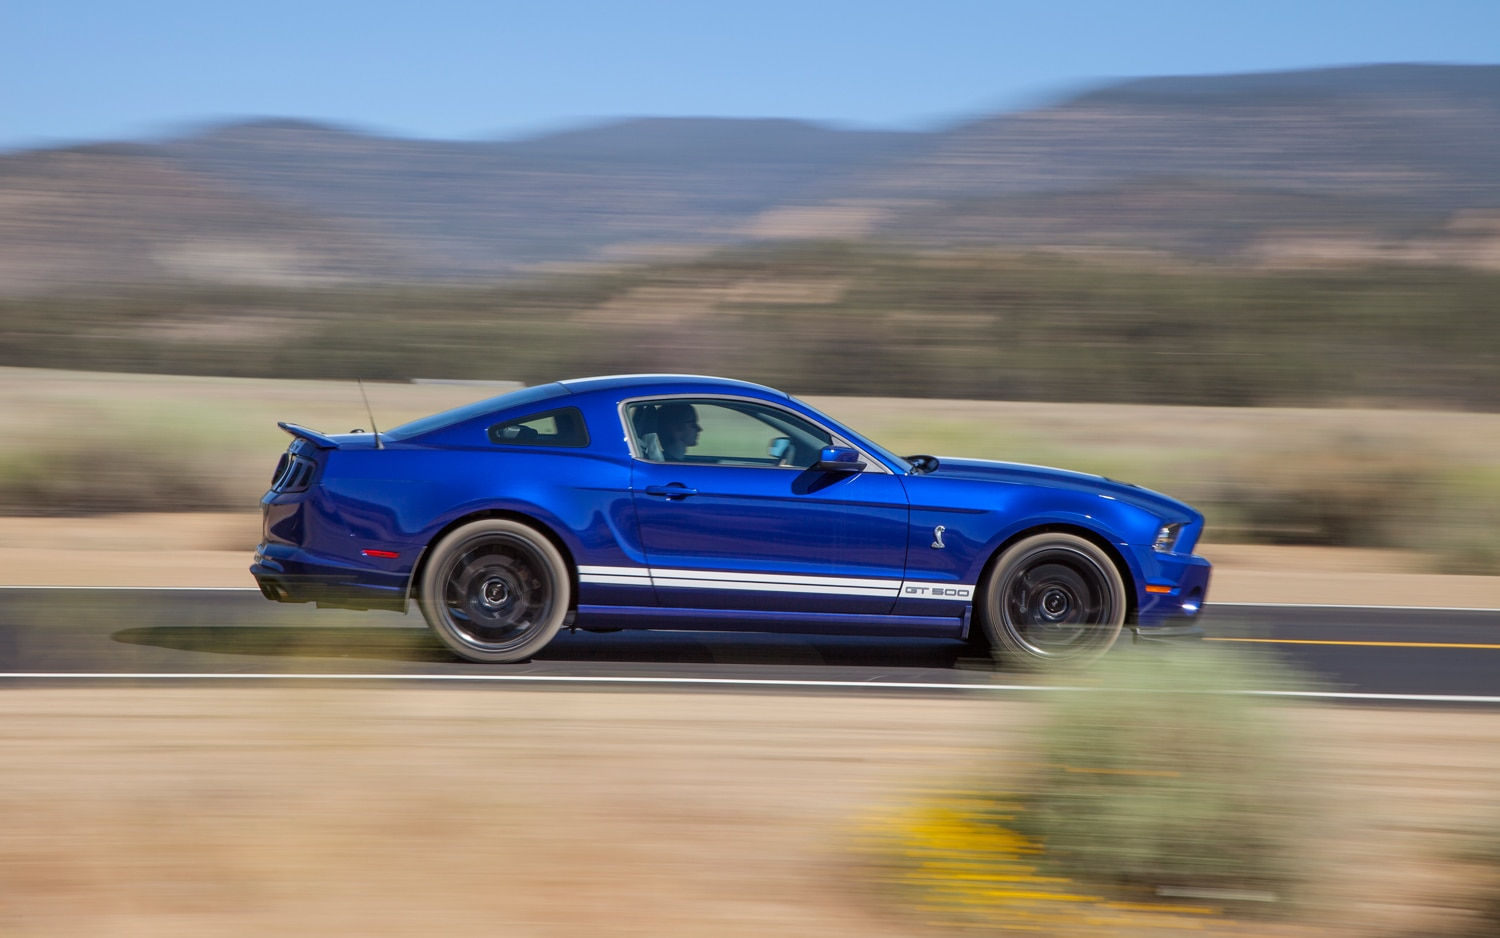 2013 Chevrolet Camaro Ss 1le Vs 2013 Ford Mustang Boss